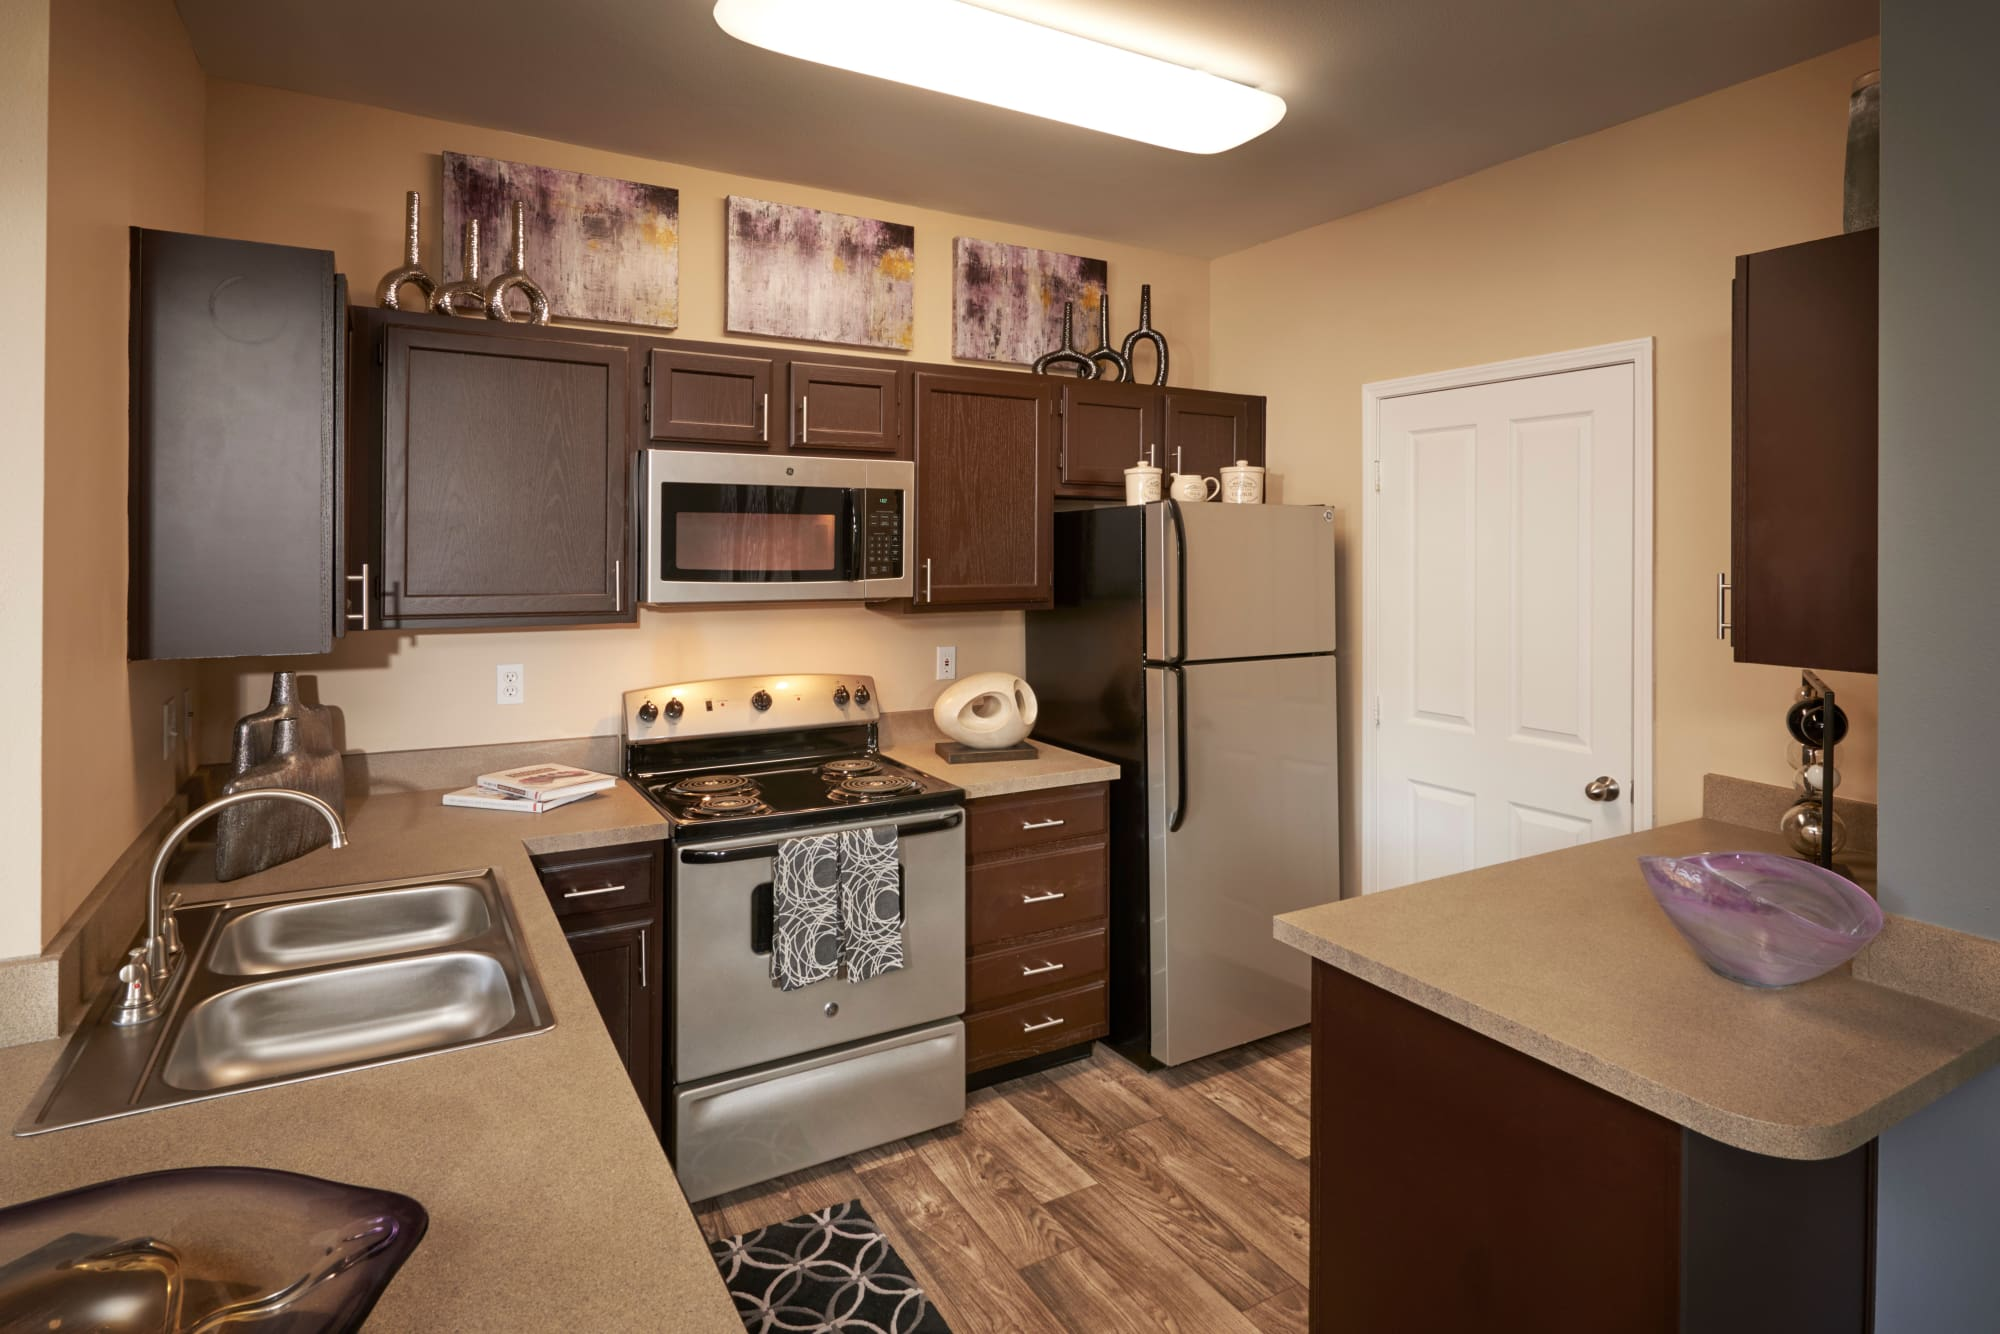 Renovated Kitchen with stainless steel appliances and a breakfast bar at Legend Oaks Apartments in Aurora, Colorado